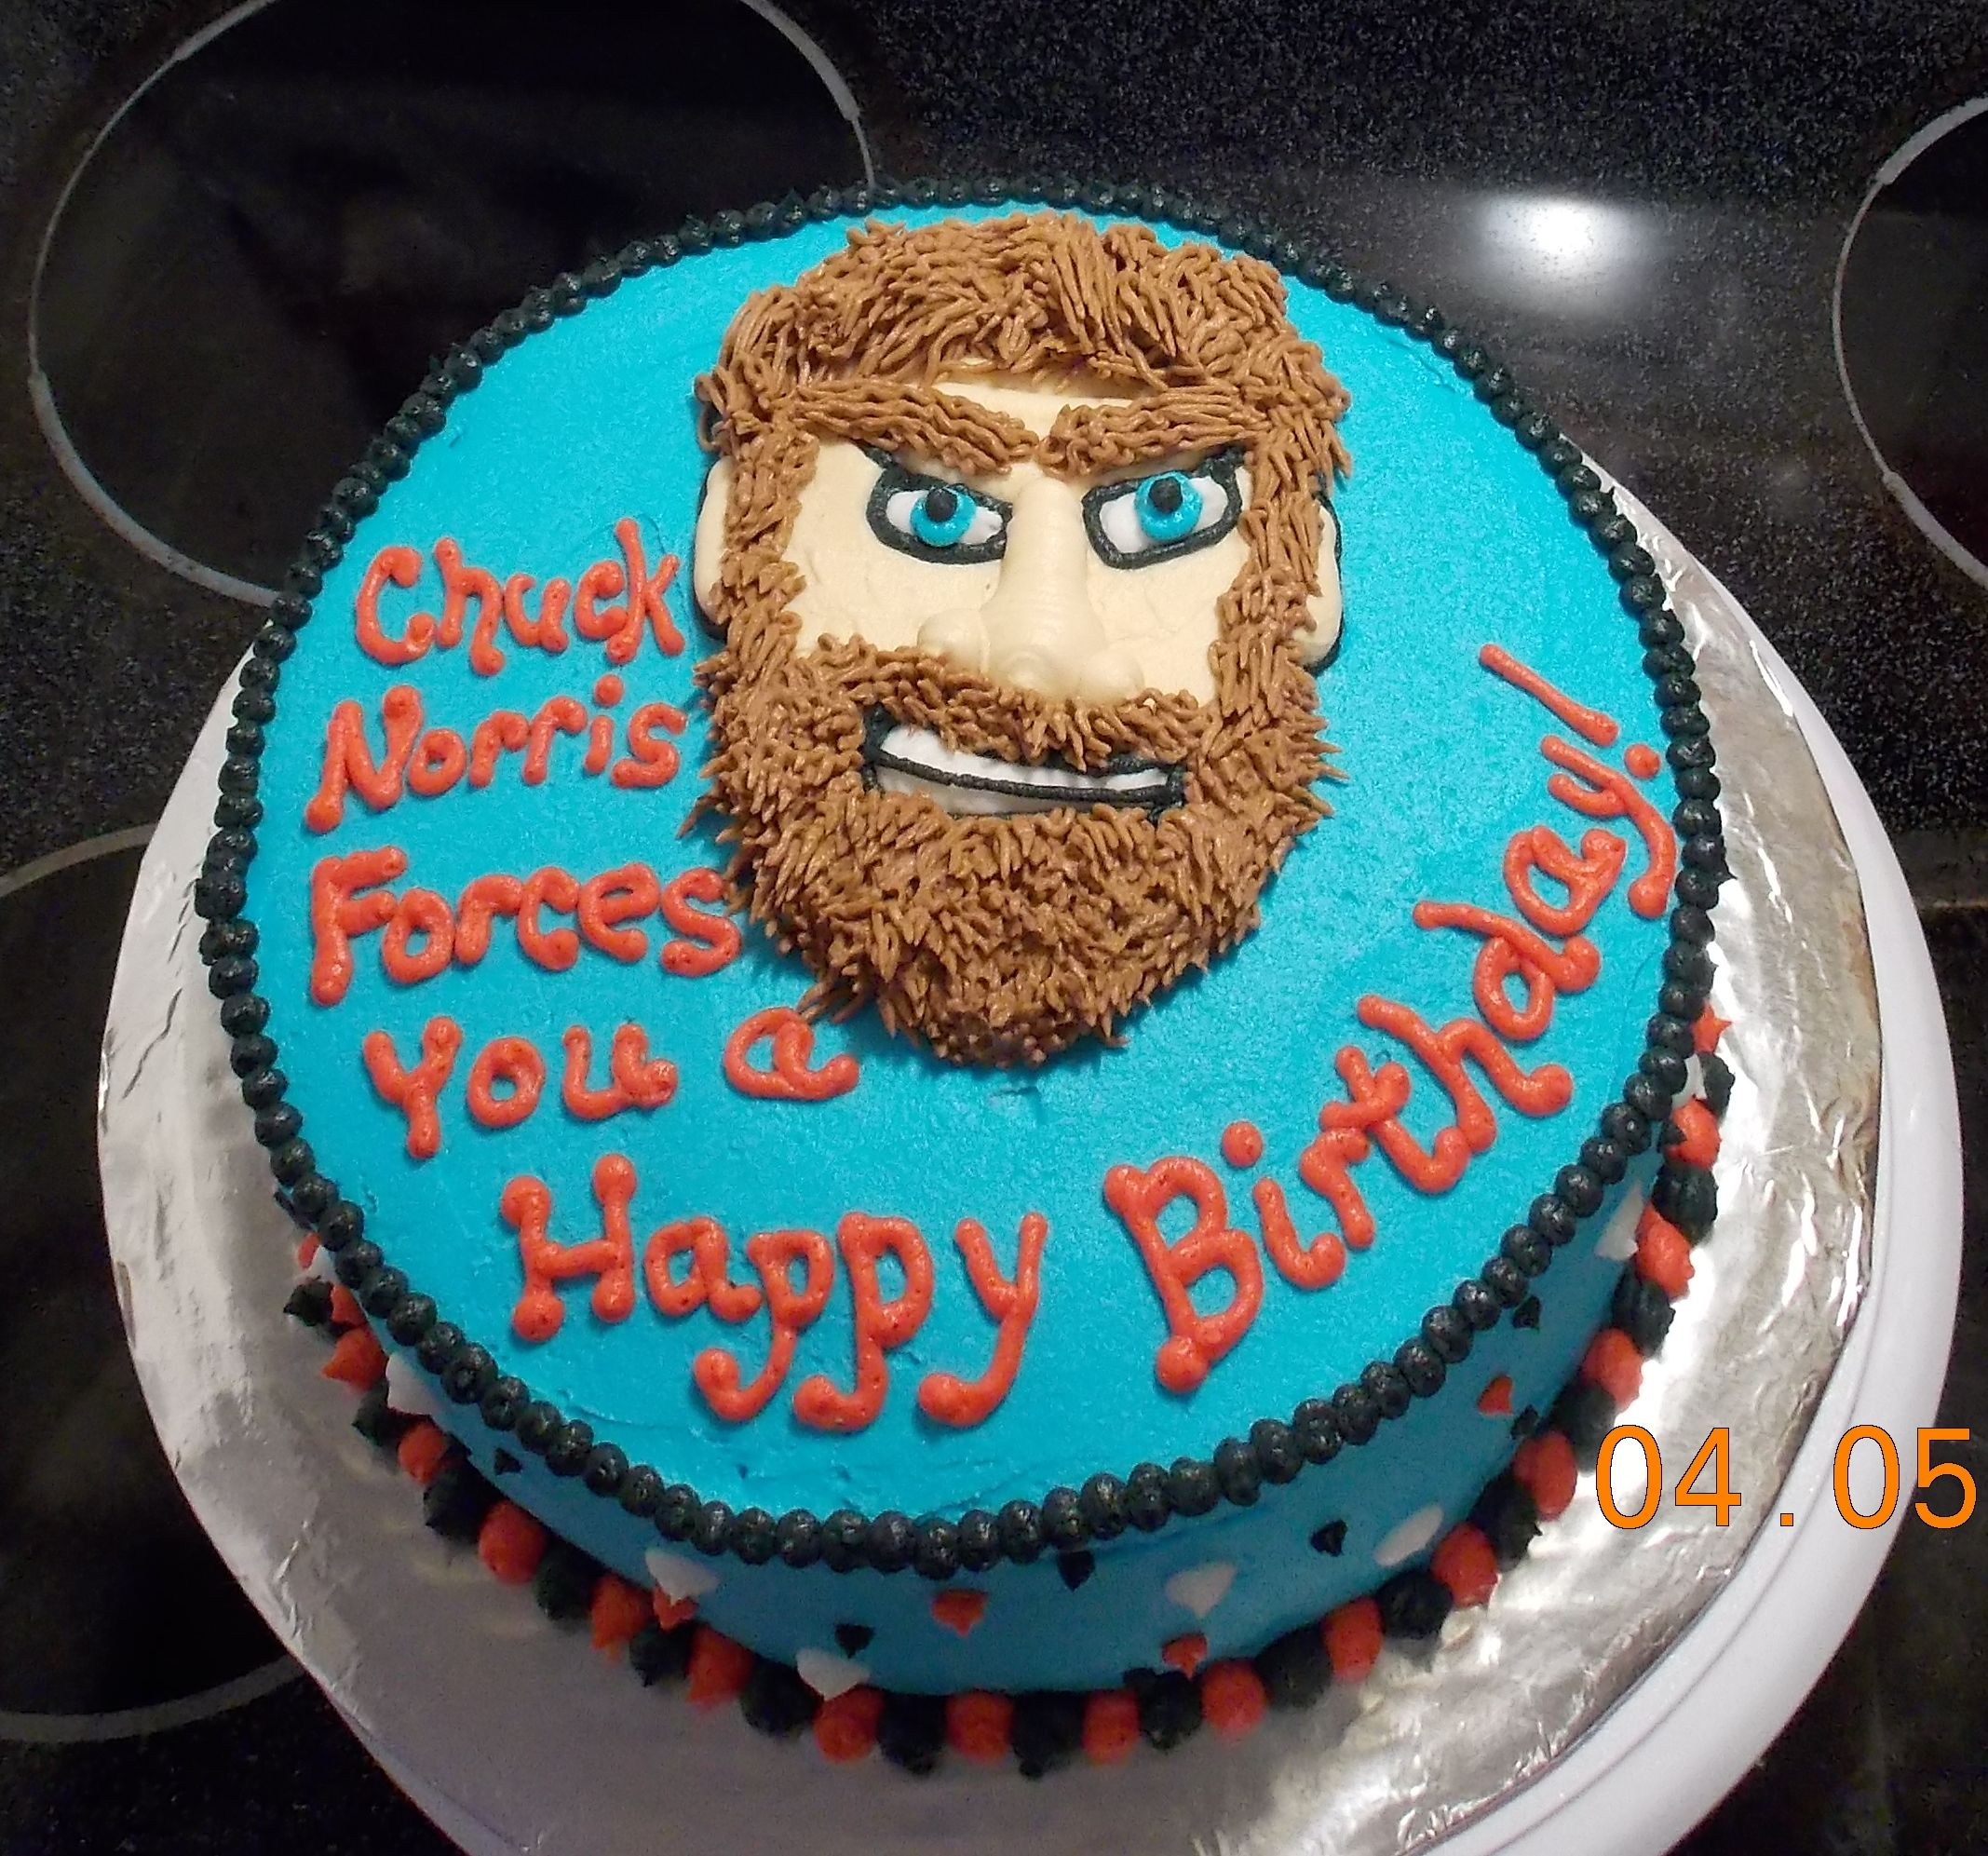 Terrific Chuck Norris Cake For My Brother Its Our Thing Cake Desserts Personalised Birthday Cards Sponlily Jamesorg